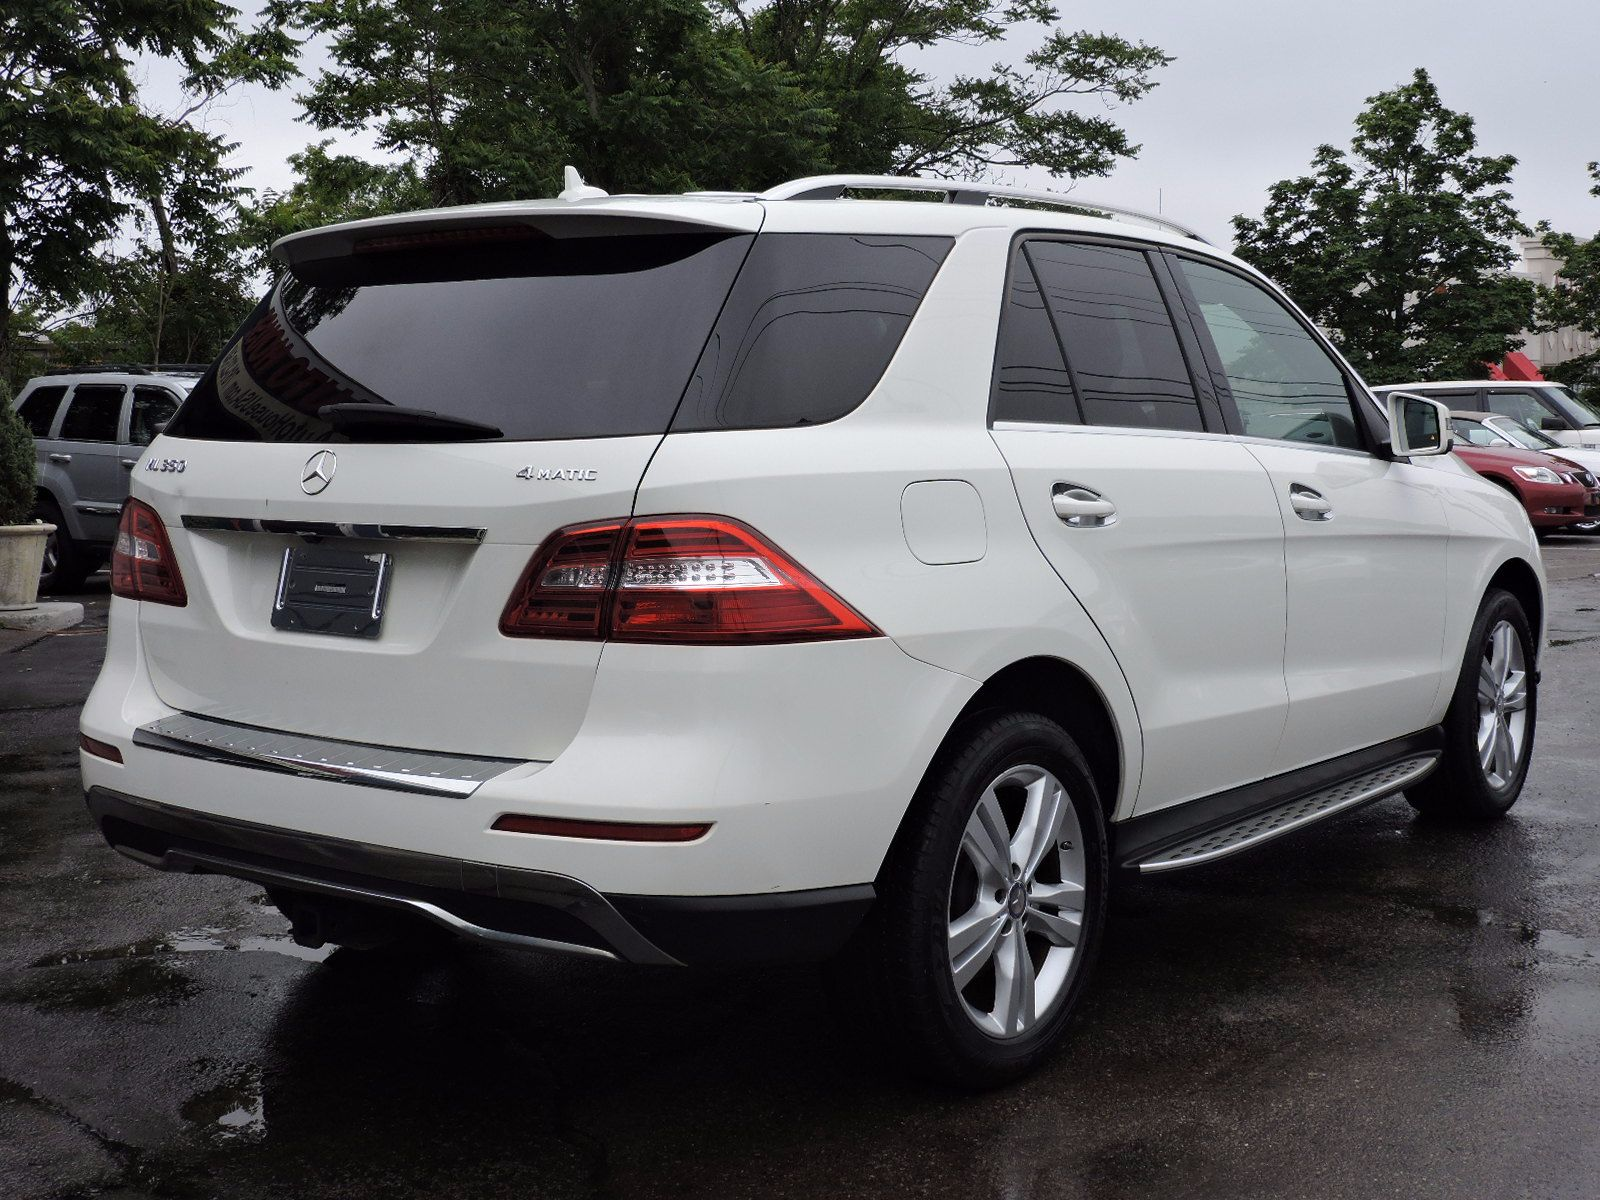 used 2013 mercedes benz ml 350 ls at auto house usa saugus. Black Bedroom Furniture Sets. Home Design Ideas